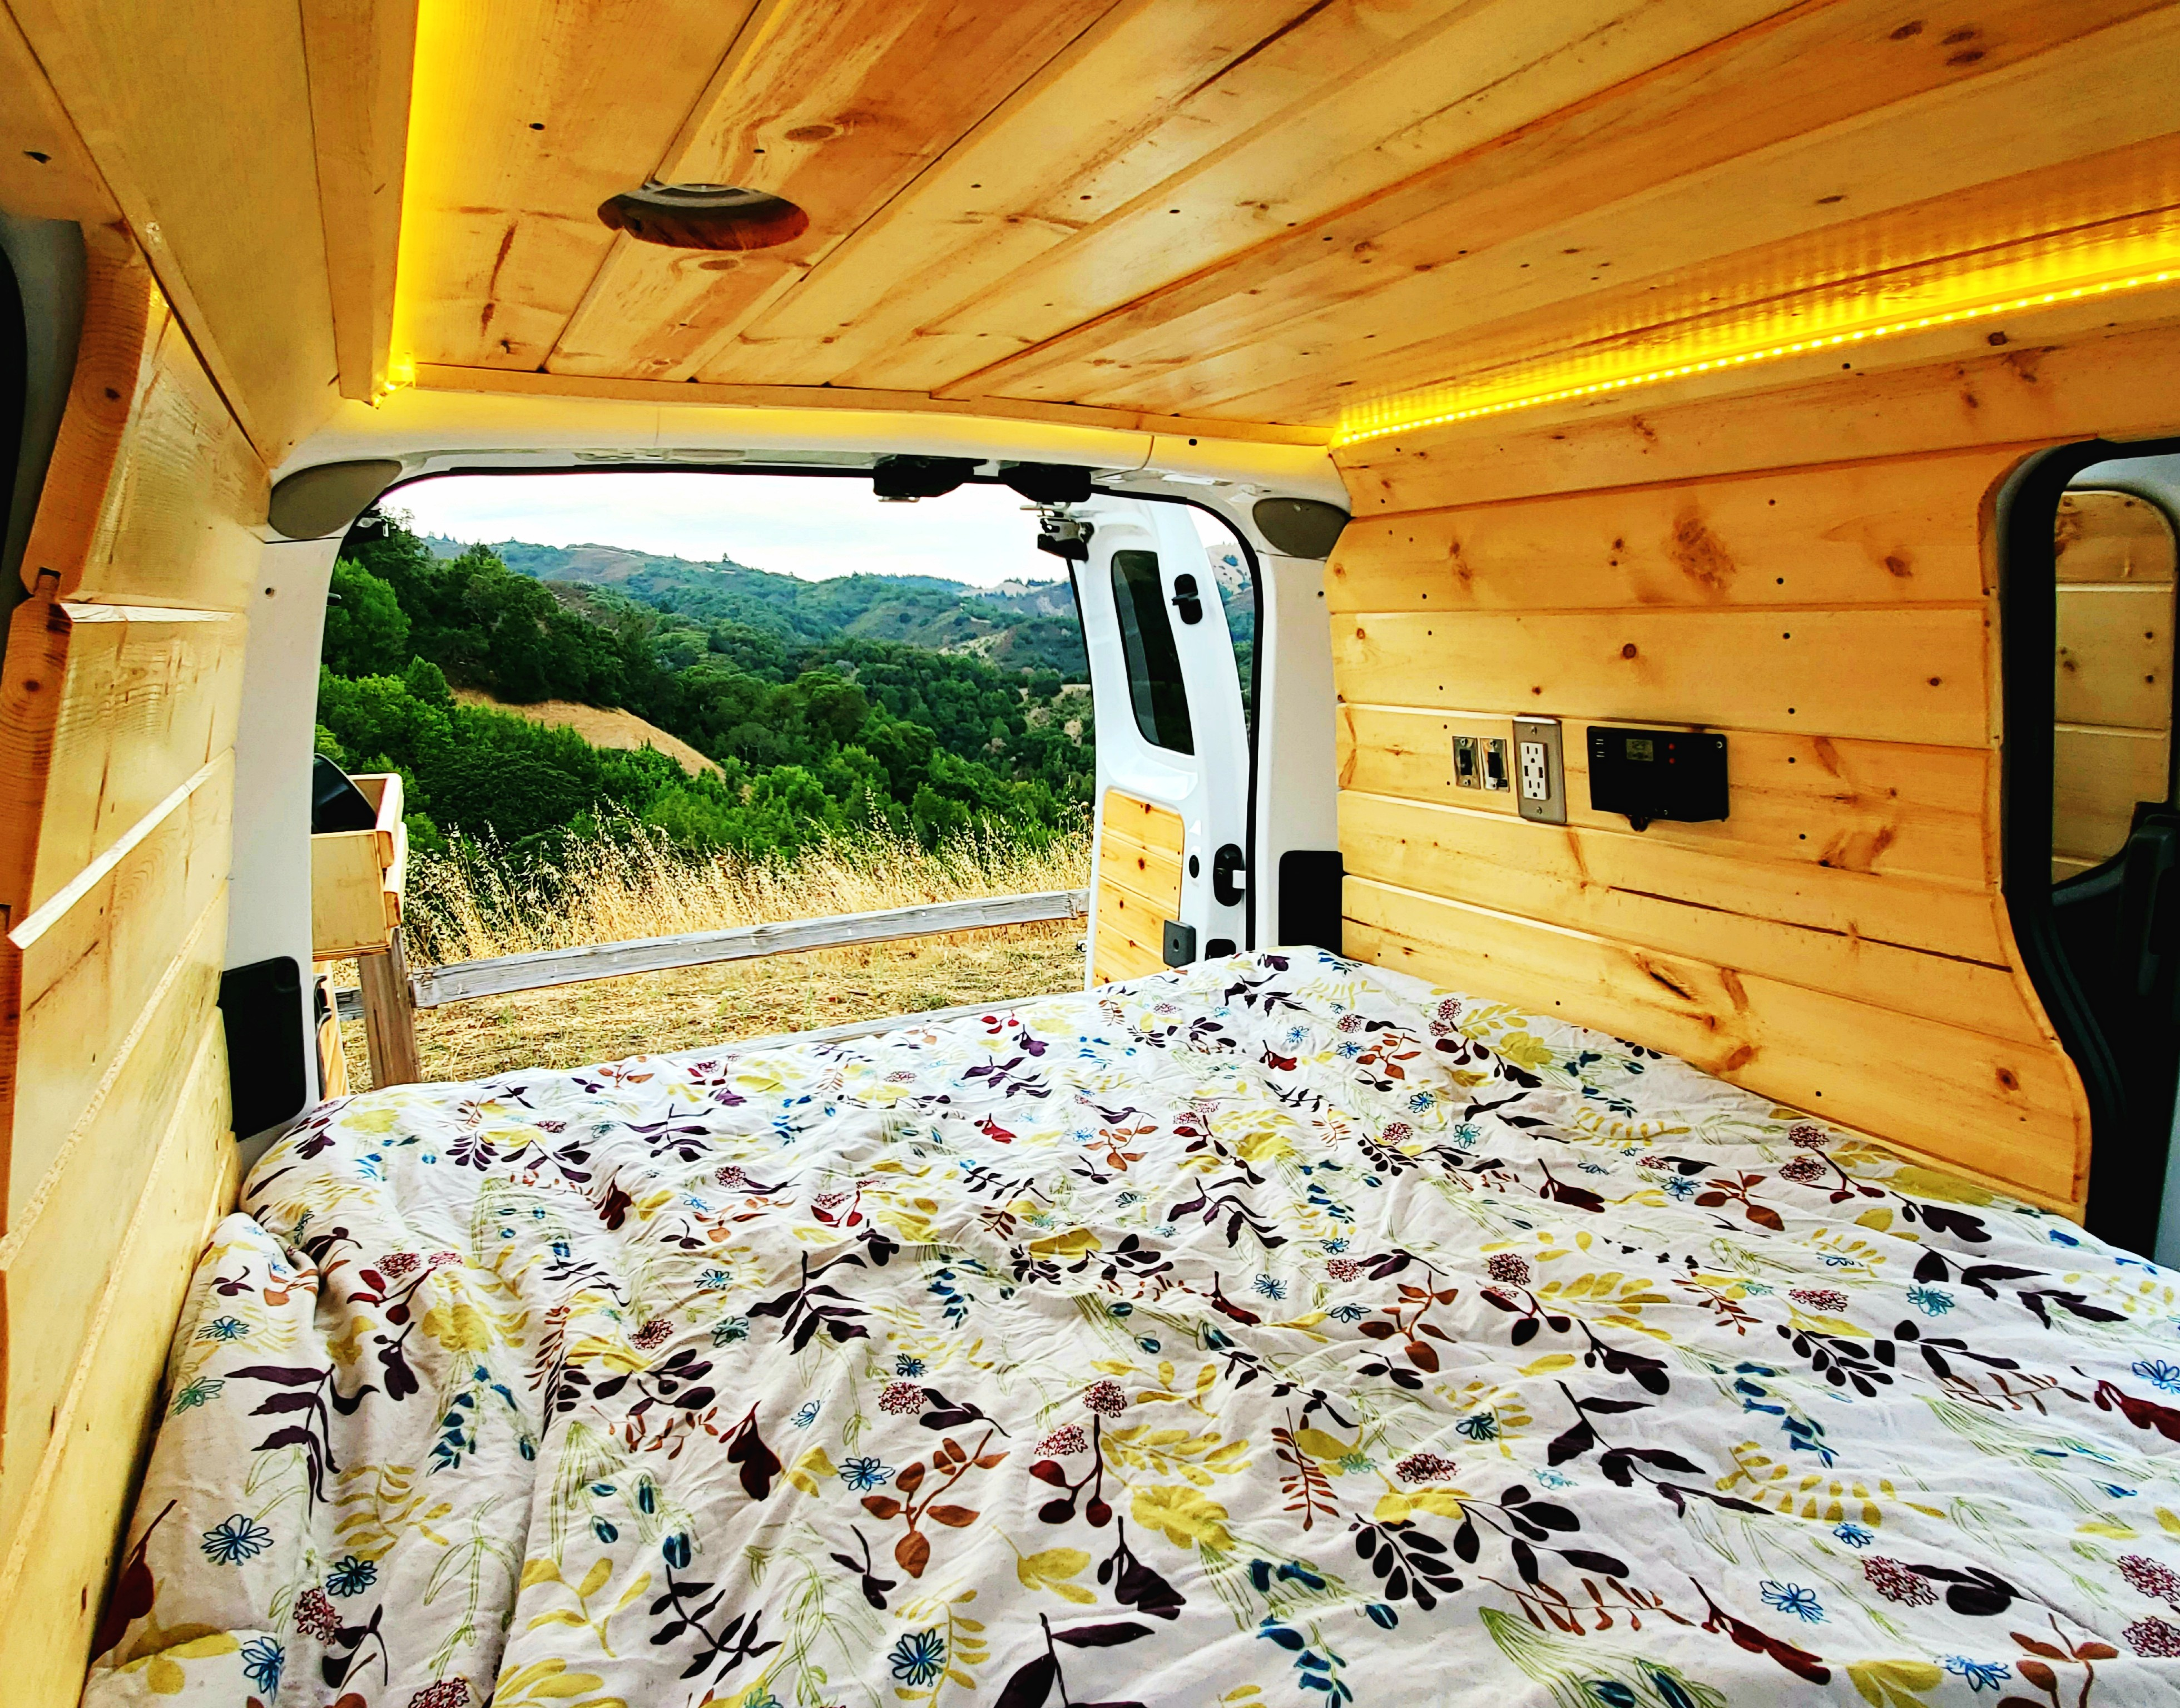 Linens included with rental including pillows and comforter. Nissan NV200 2019